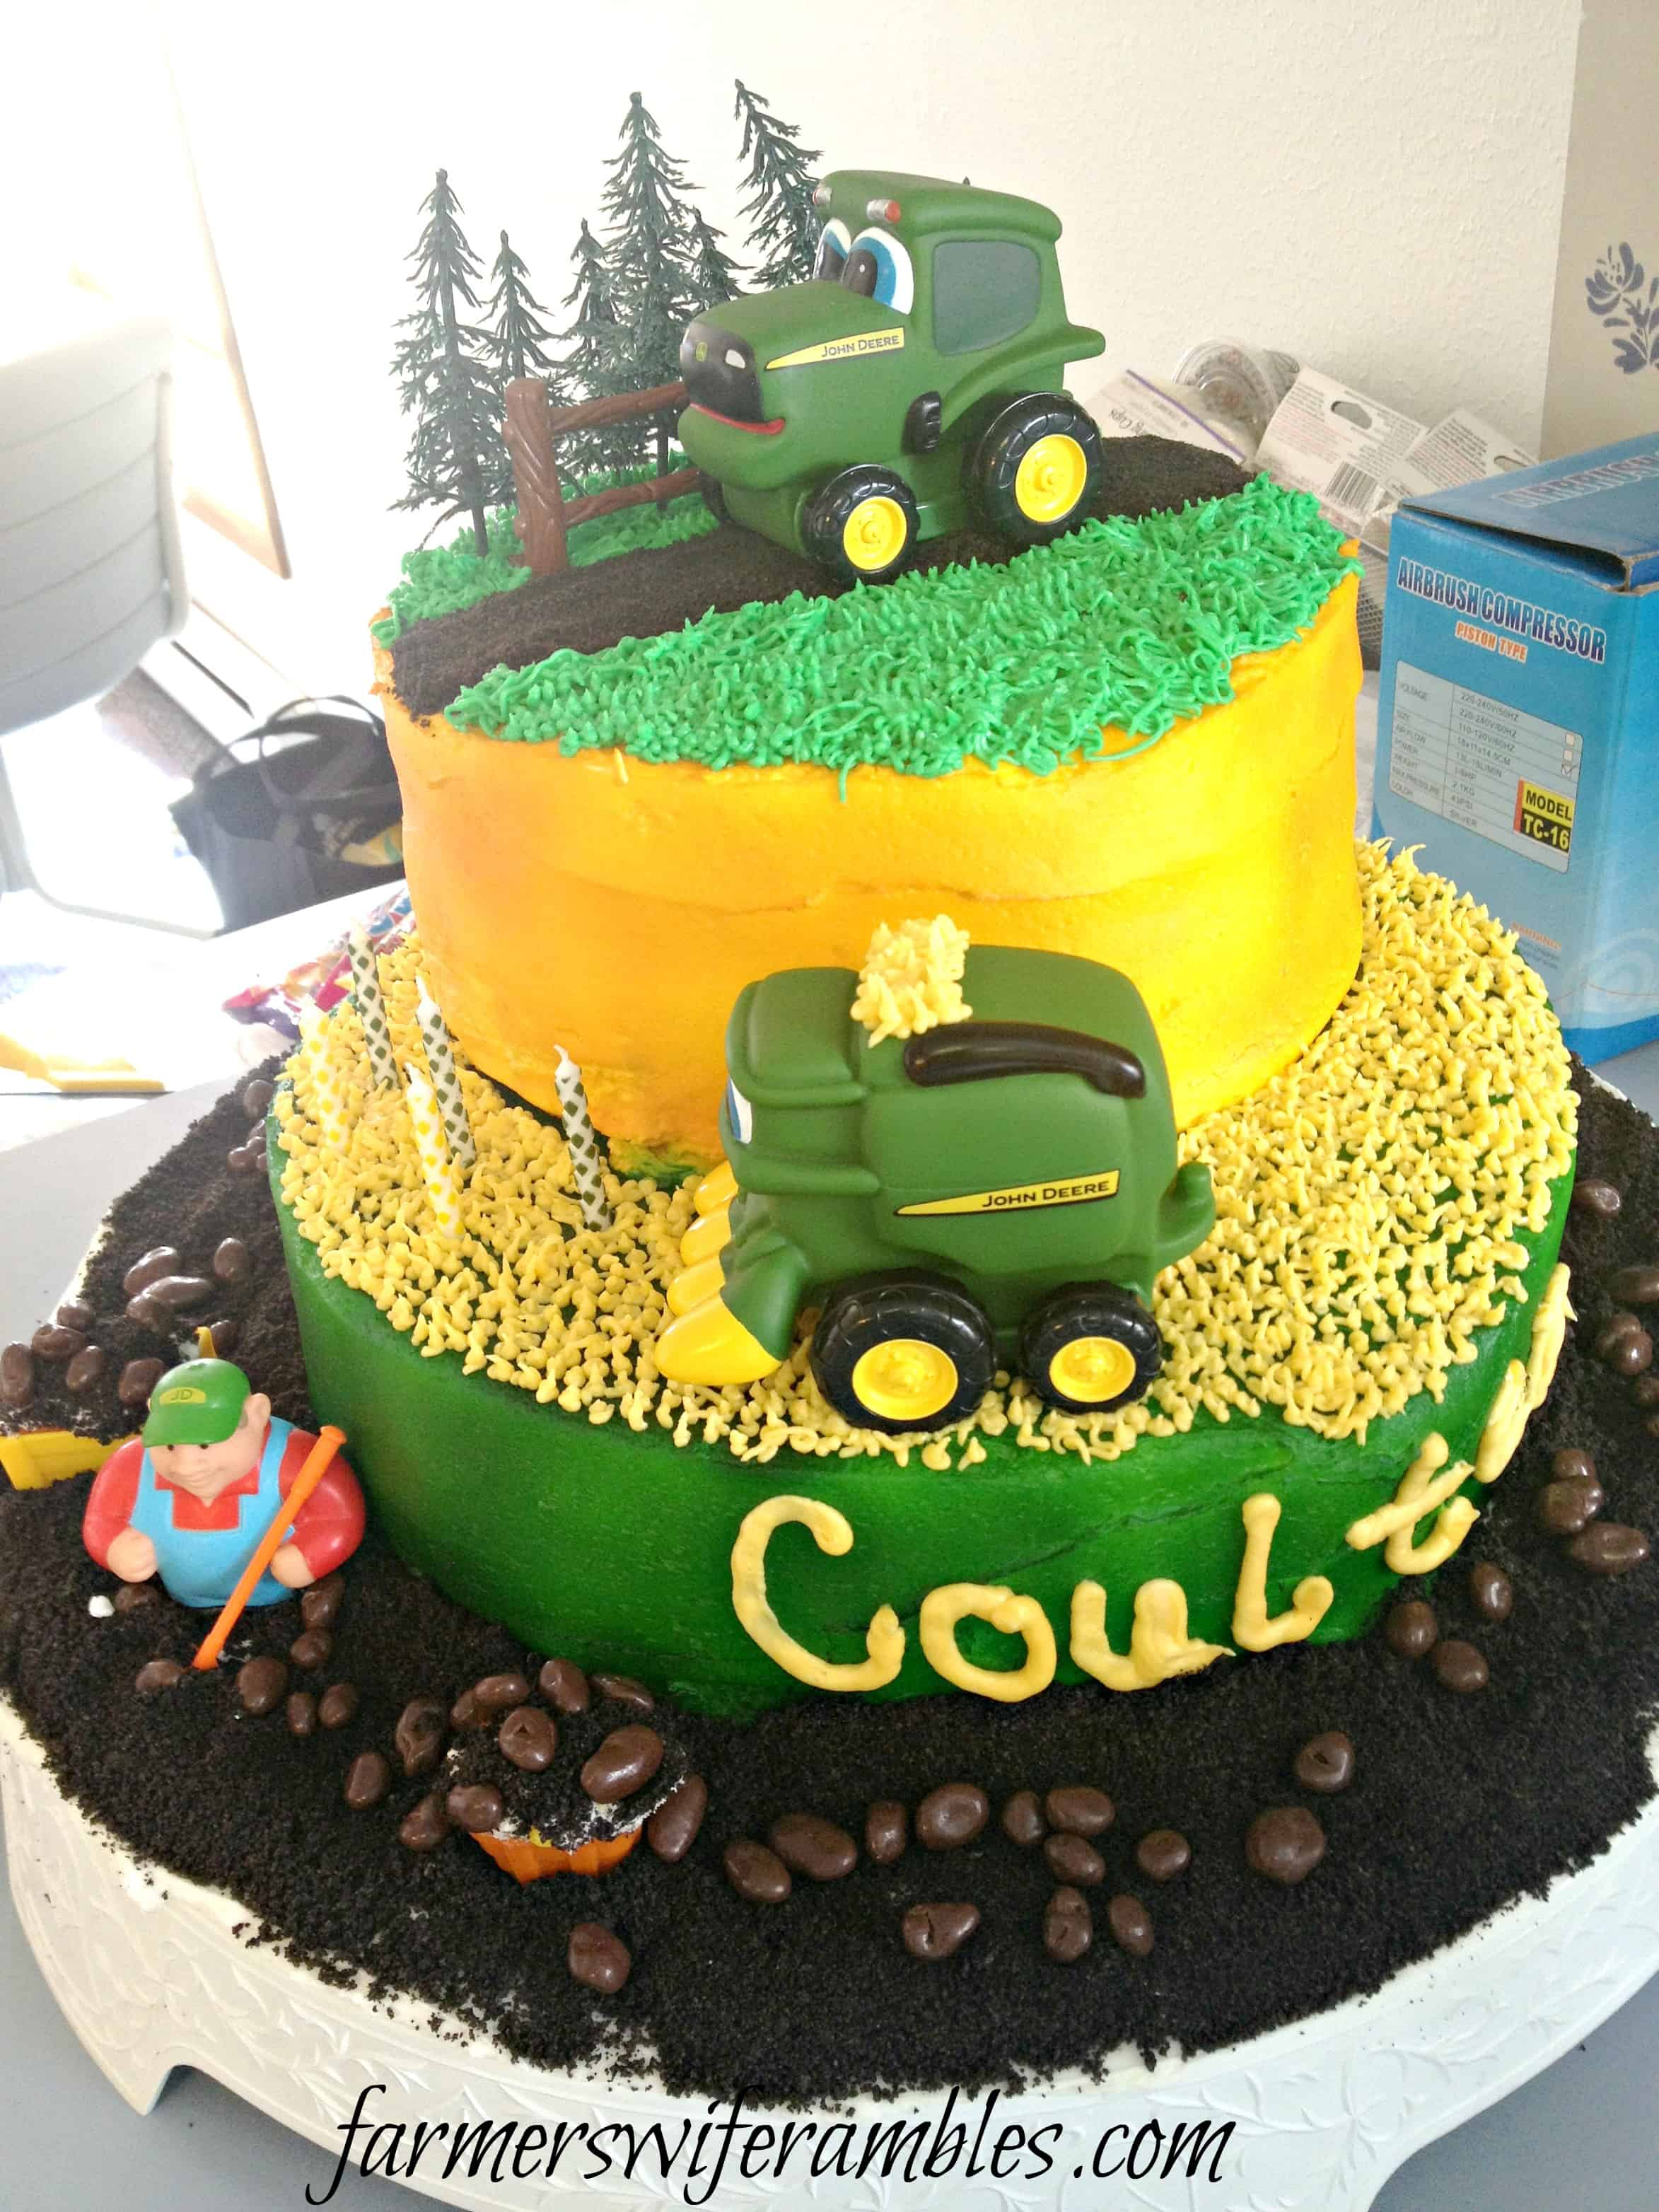 Amazing Phone Dump Friday John Deere Birthday Cake Farmers Wife Rambles Funny Birthday Cards Online Elaedamsfinfo